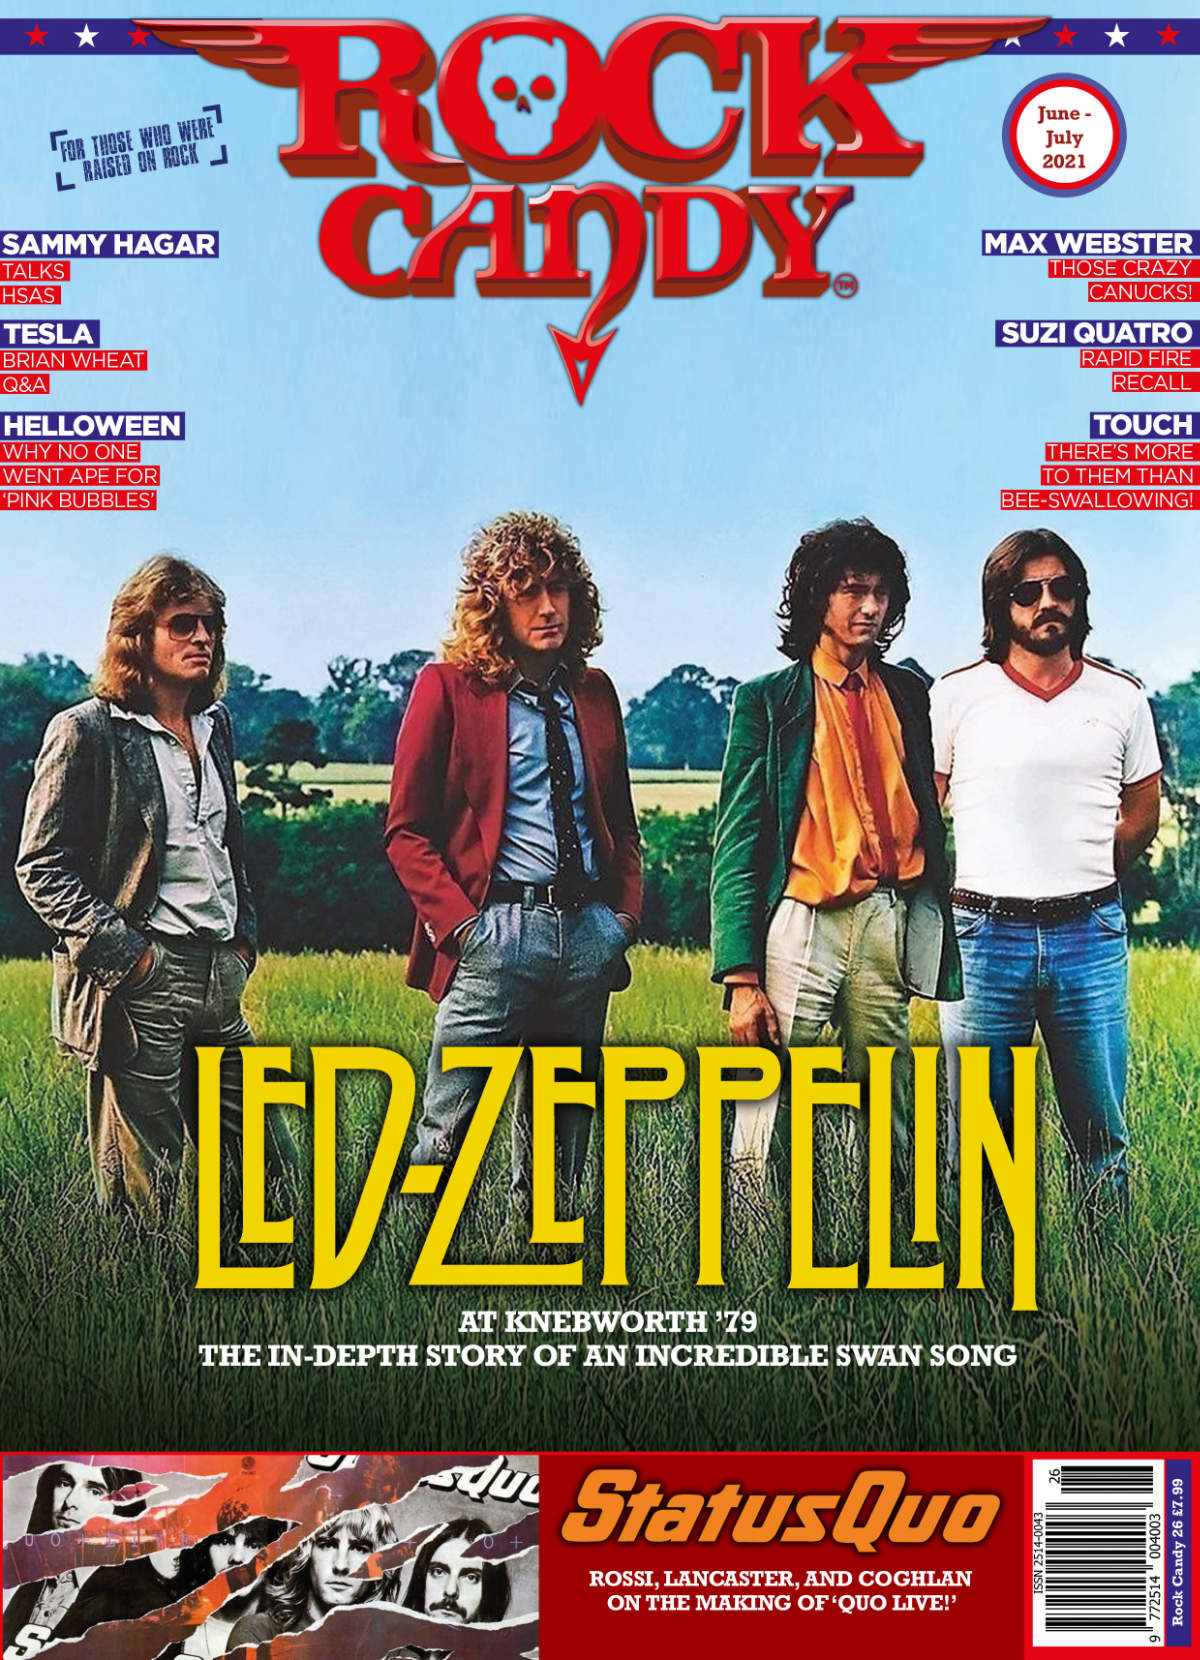 Issue 26 is available right now, featuring our 12-page deep-dive Zep at Knebworth '79 cover story